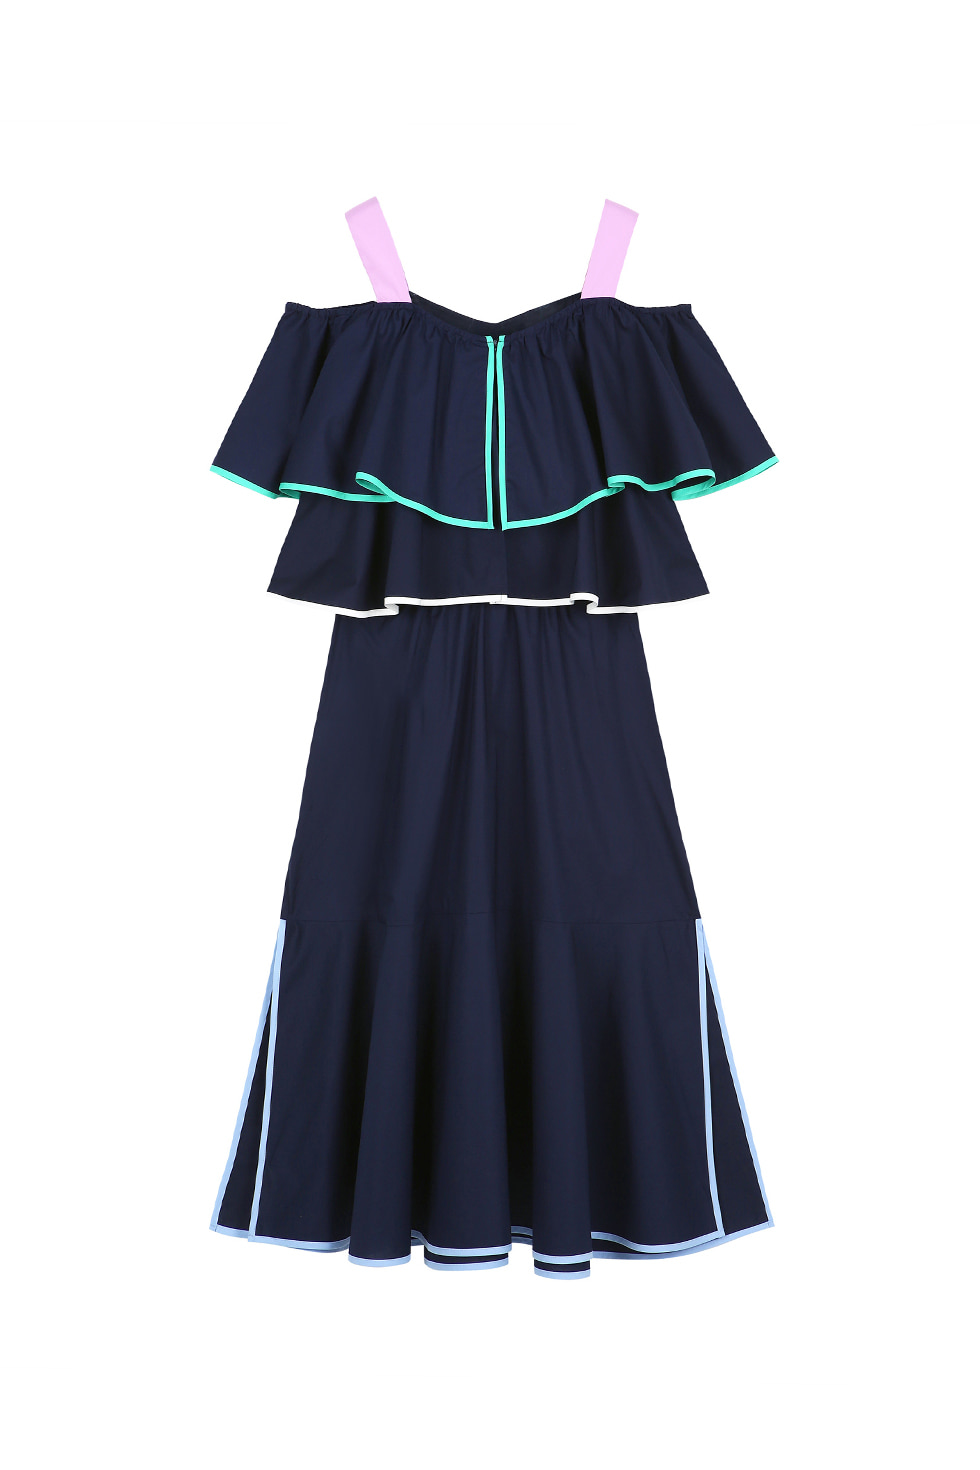 BINDING CAN-CAN DRESS - NAVY